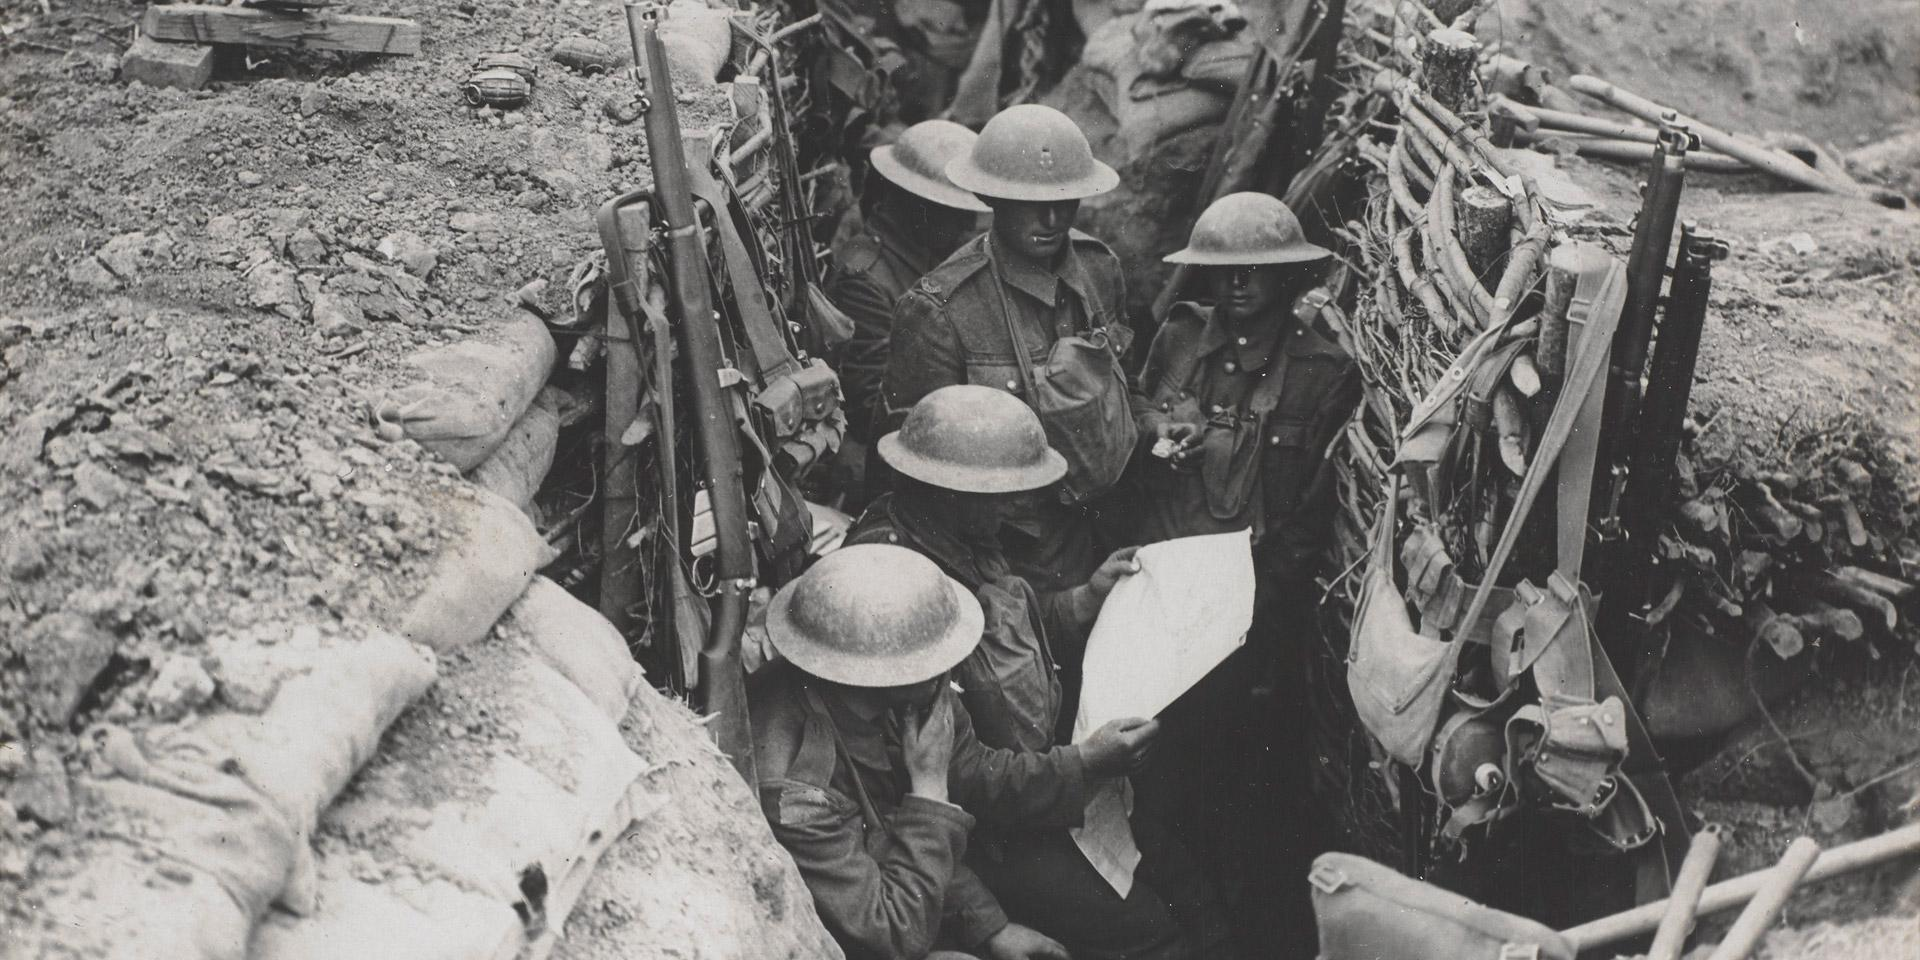 Soldiers reading a newspaper in the trenches, c1916